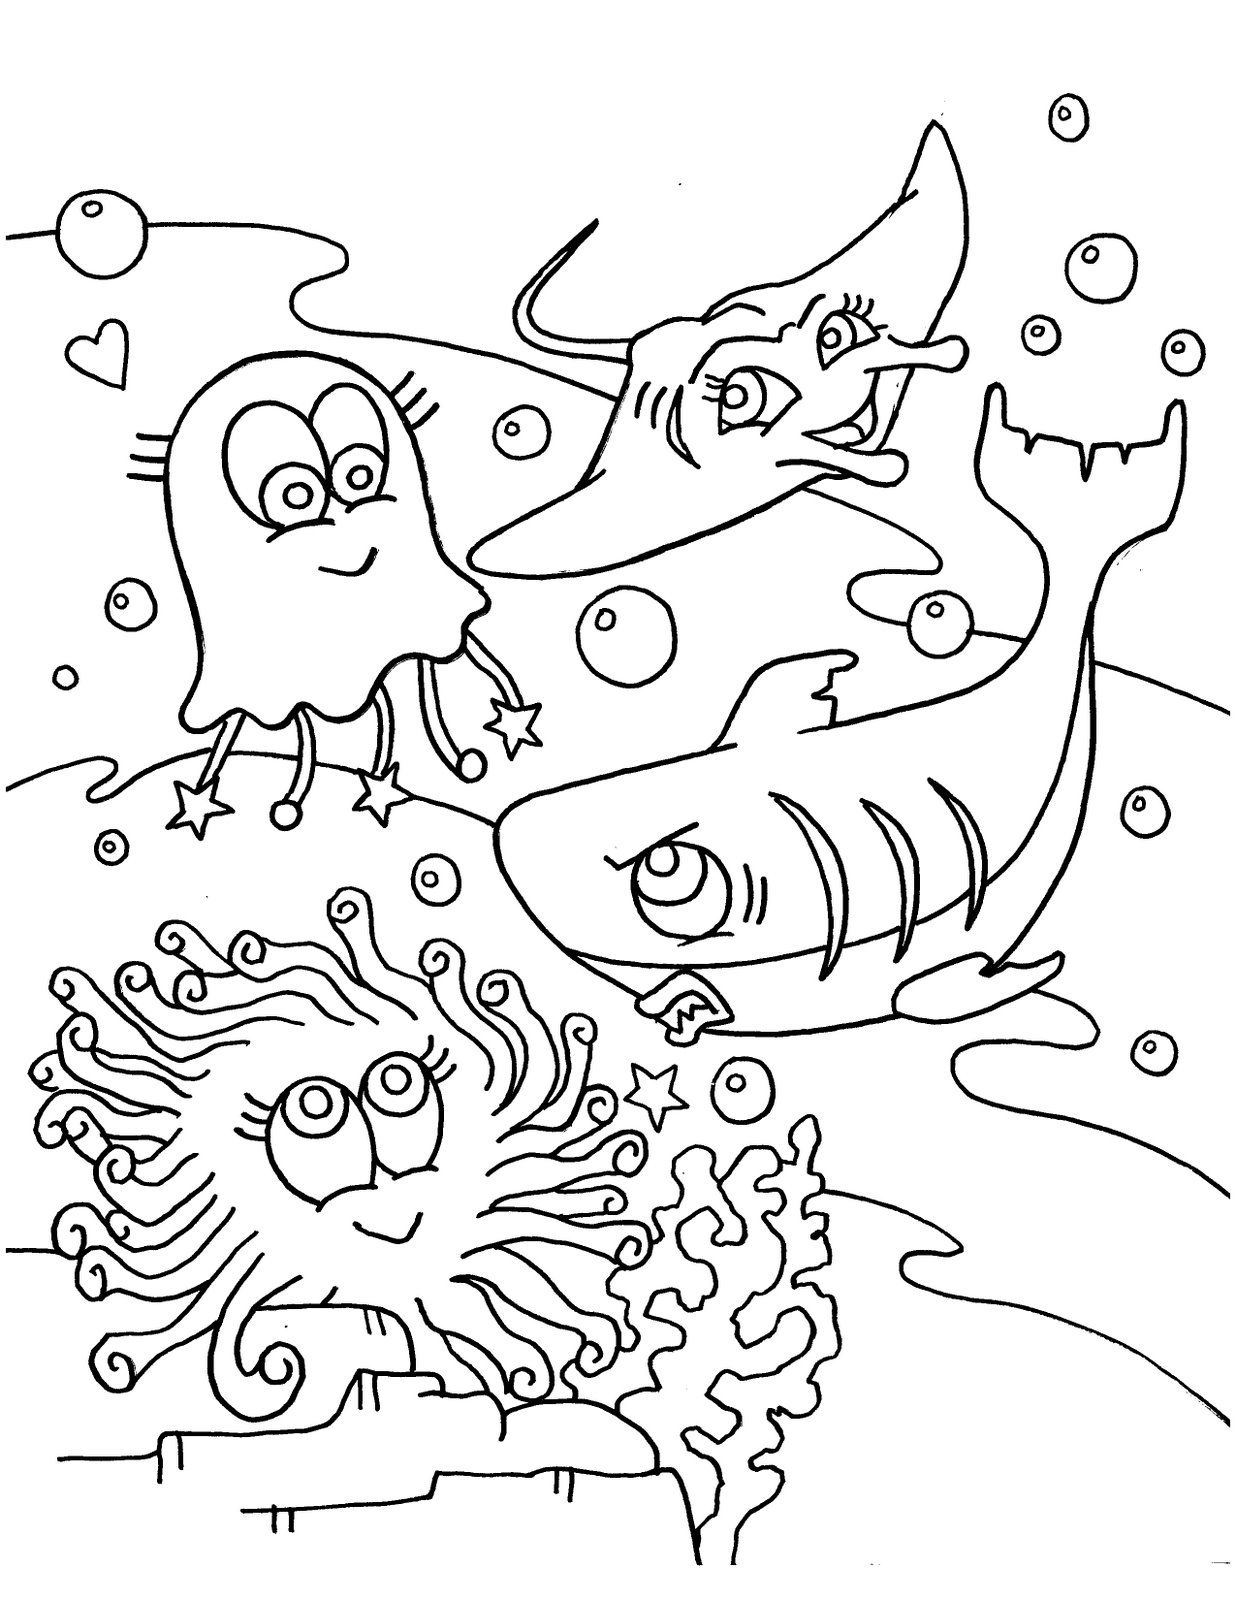 ocean wildlife coloring pages - photo #8